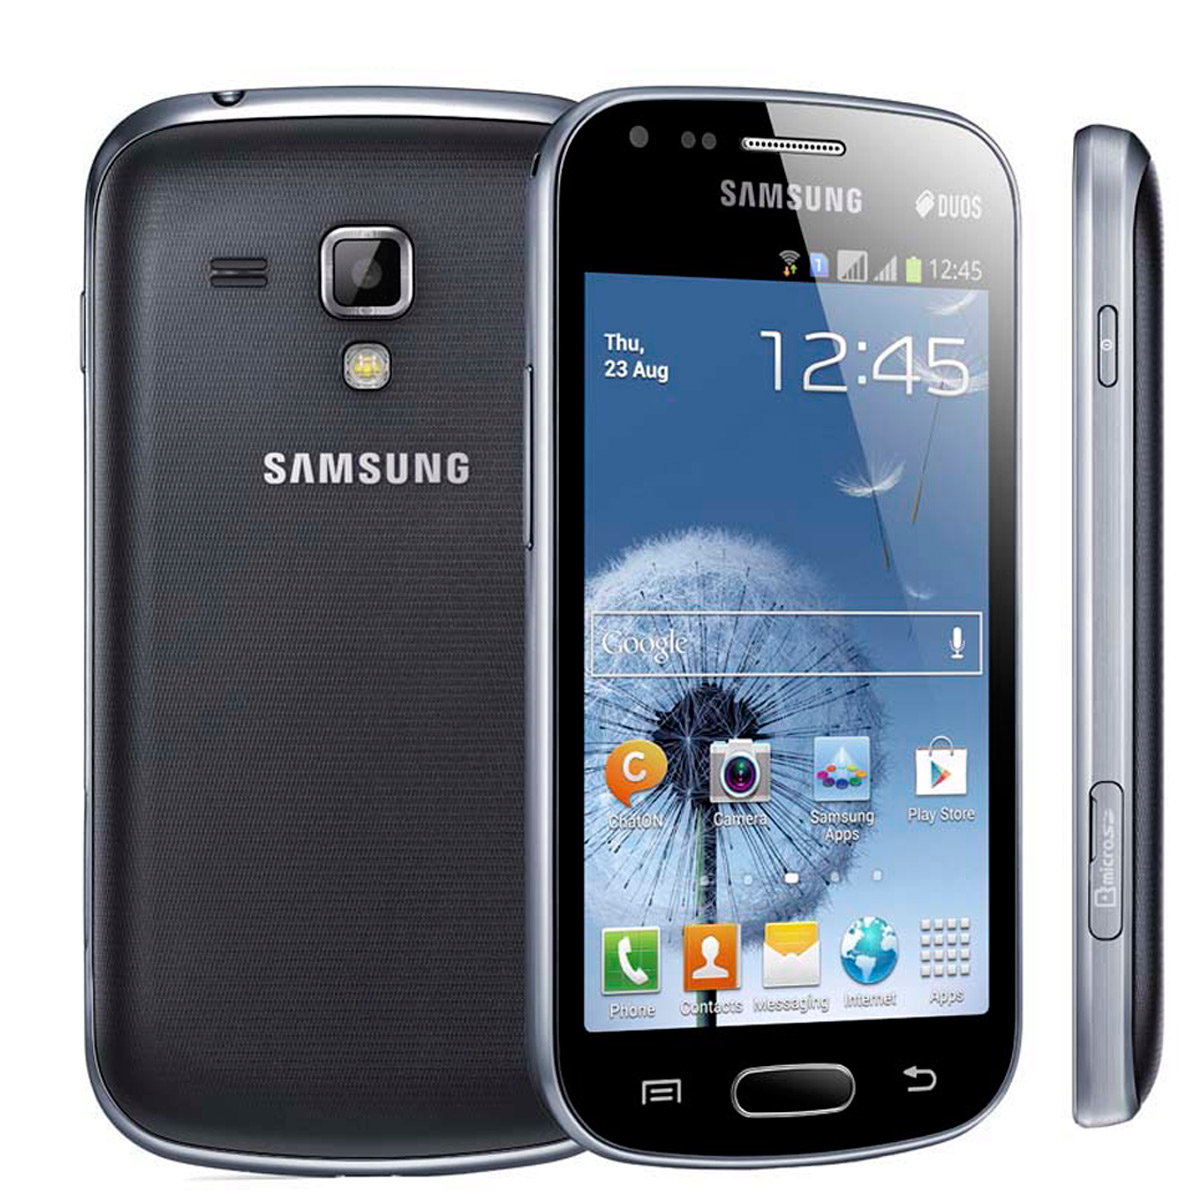 samsung galaxy s duos gt s7562l dual sim android phone unlocked good condition used cell. Black Bedroom Furniture Sets. Home Design Ideas